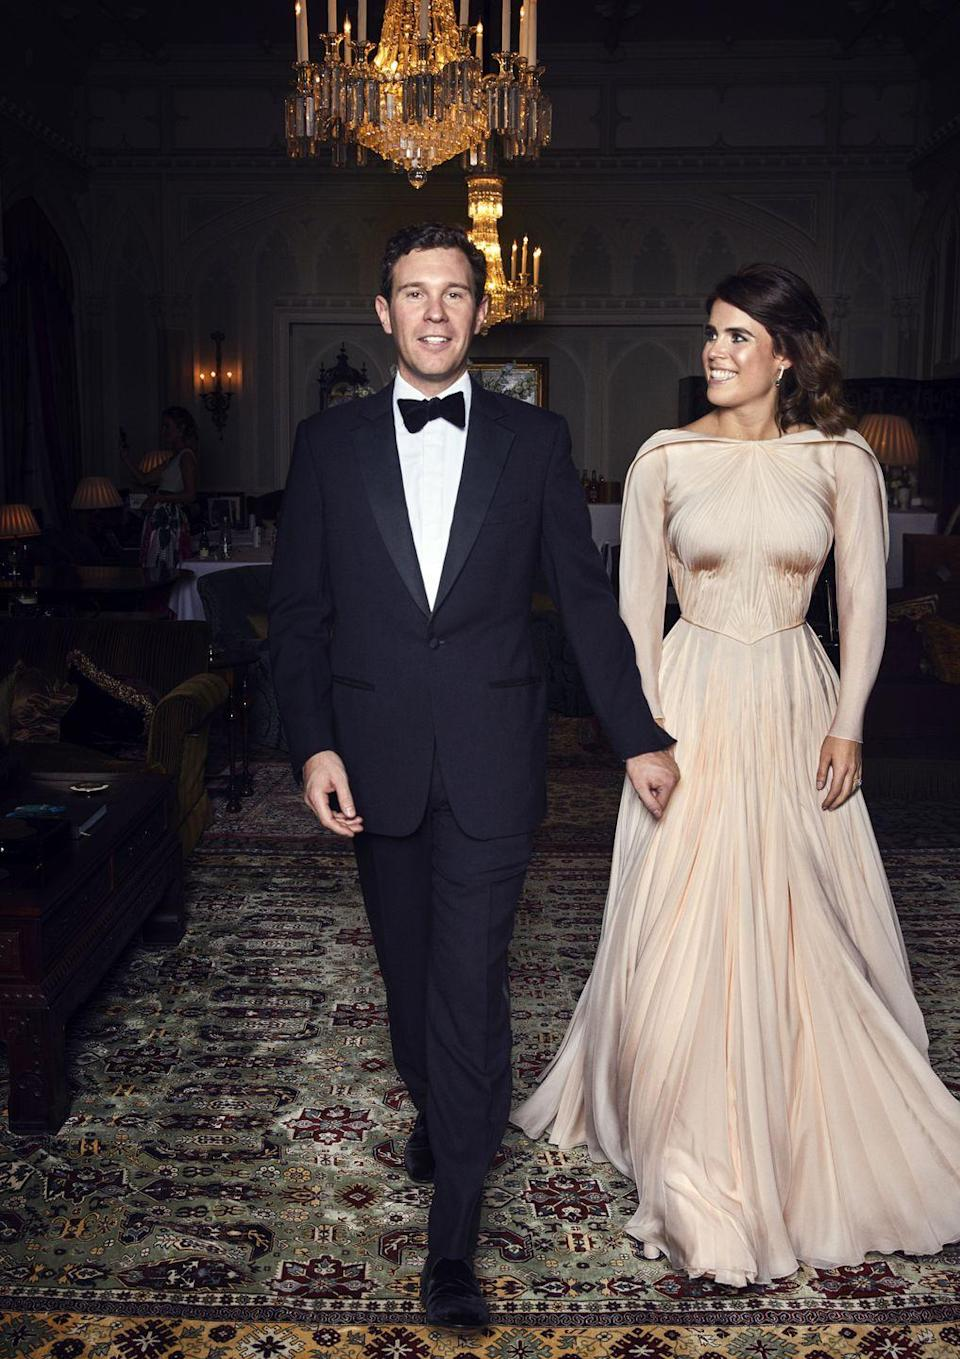 "<p>The second dress Princess Eugenie wore to her royal wedding in October 2018 is one for the books. For her reception, the Princess changed into a<a href=""https://www.townandcountrymag.com/style/fashion-trends/a23697214/princess-eugenie-second-royal-wedding-reception-zac-posen-dress-photos/"" rel=""nofollow noopener"" target=""_blank"" data-ylk=""slk:blush tone draped gown"" class=""link rapid-noclick-resp""> blush tone draped gown</a> designed by Zac Posen.</p>"